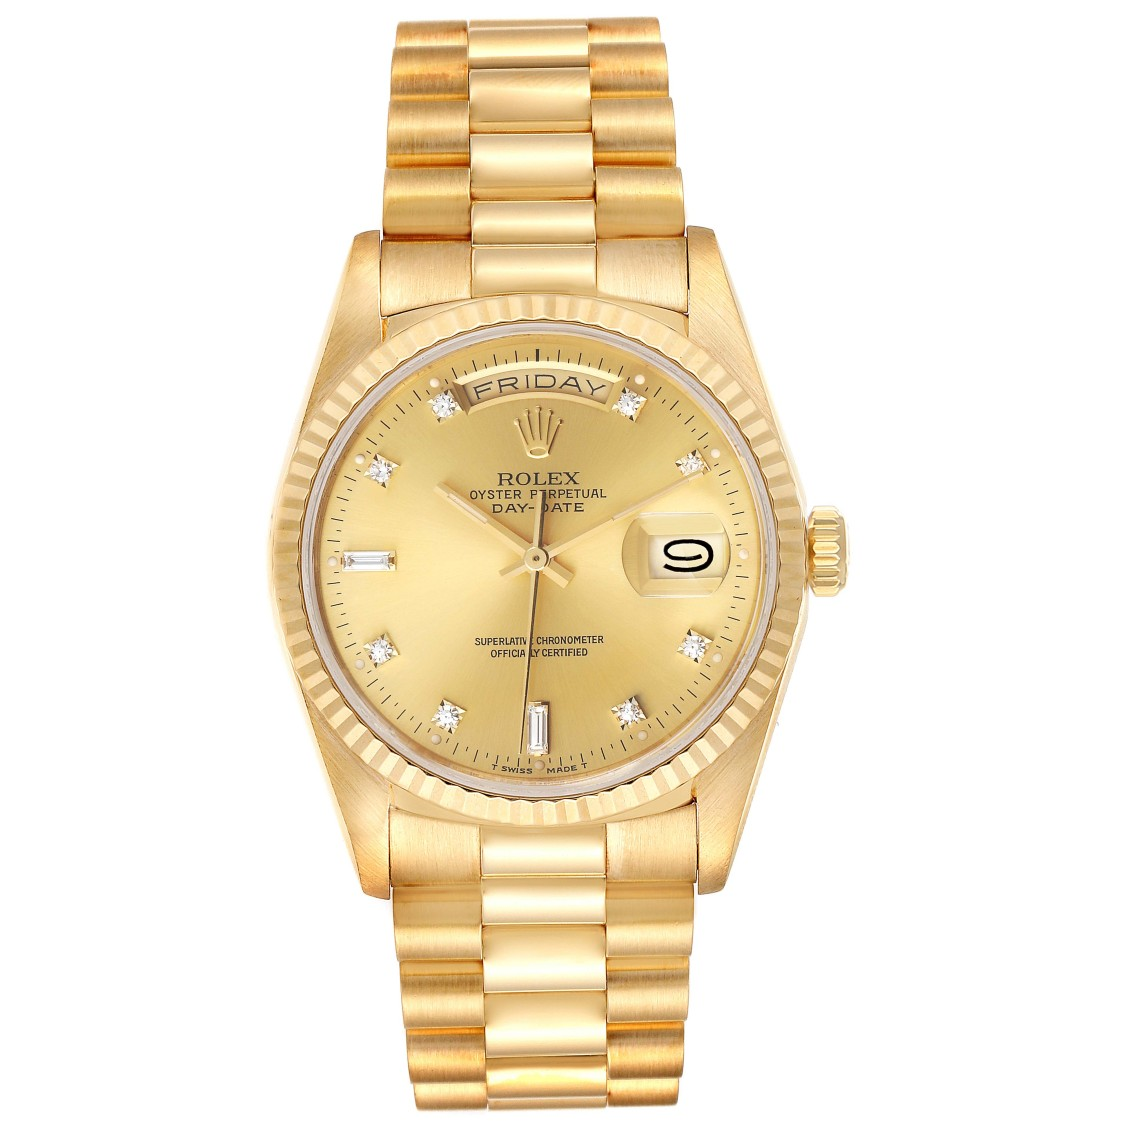 Rolex PRESIDENT DAY-DATE YELLOW GOLD DIAMOND DIAL MENS WATCH 18238